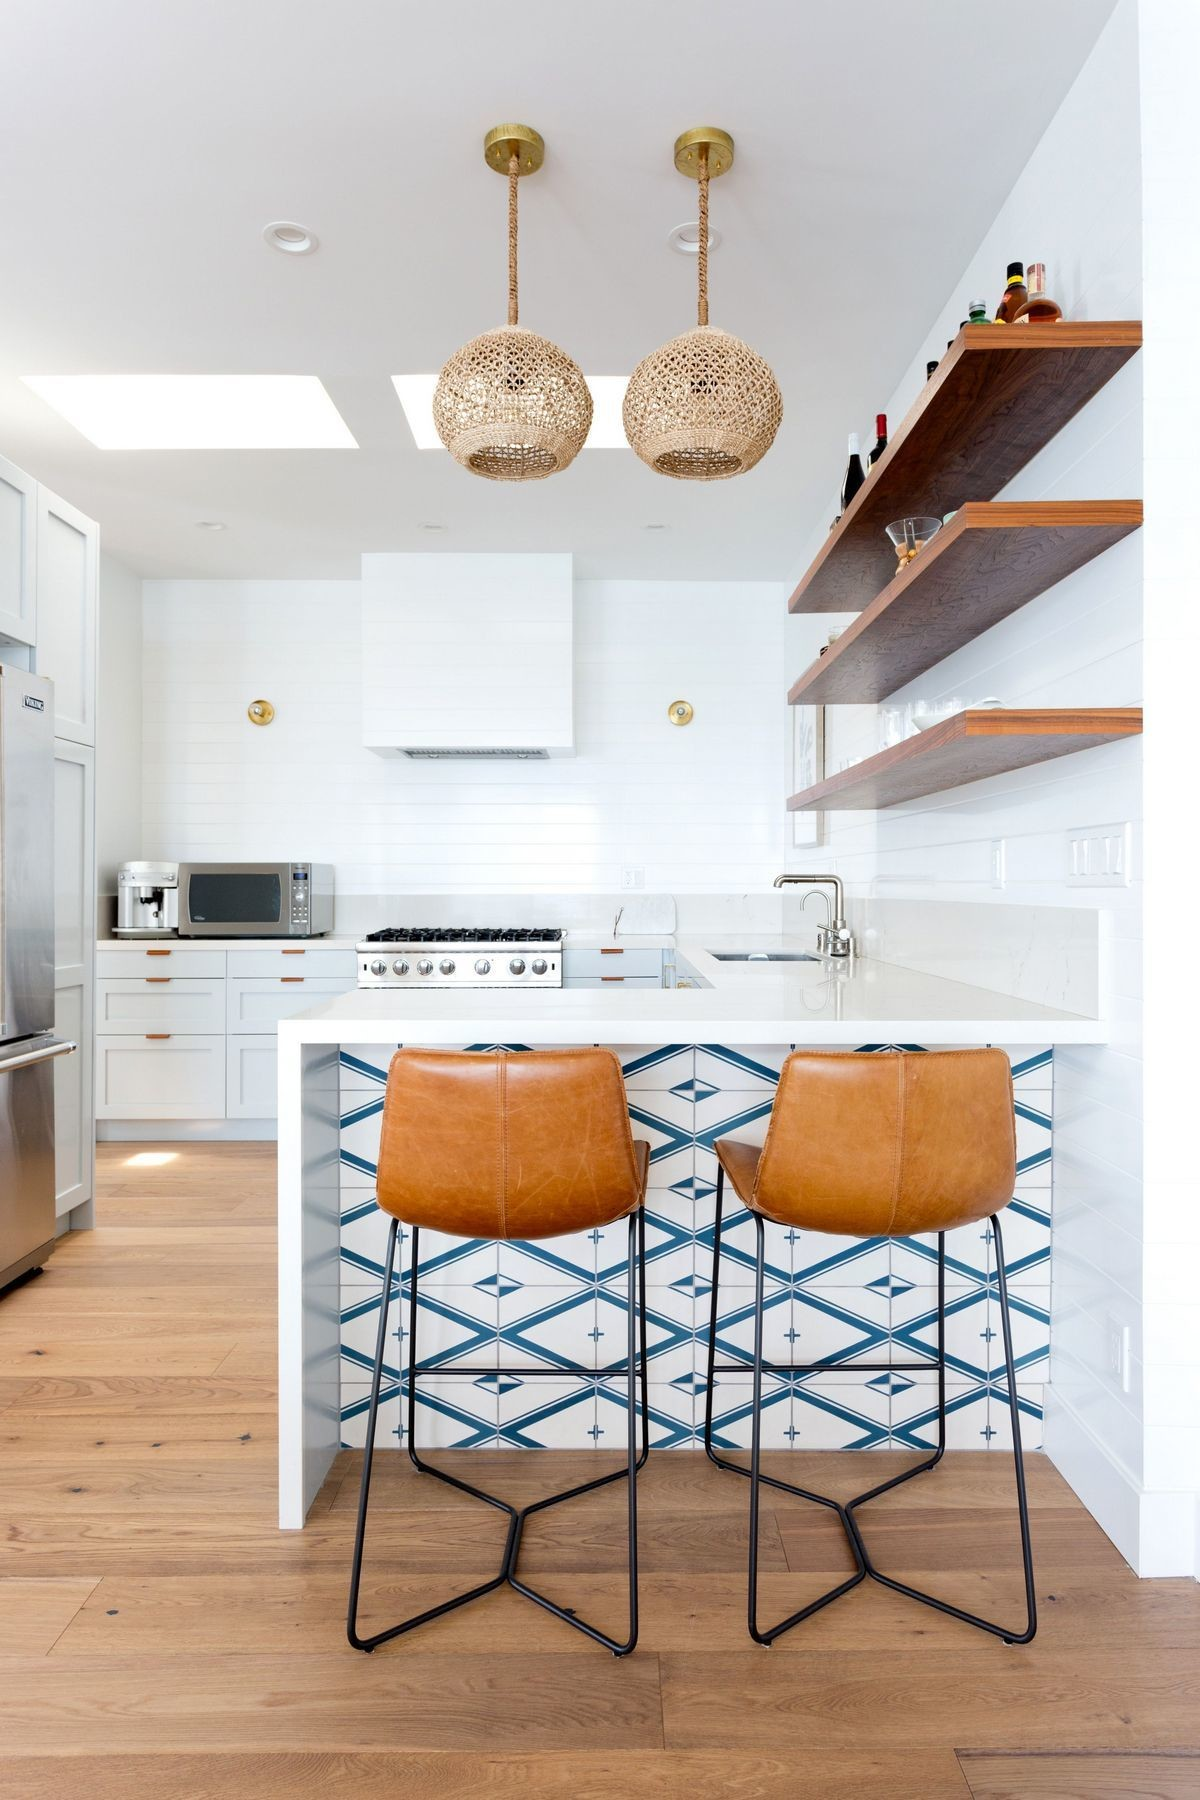 40 Kitchen Design Ideas That Are Chic And Functional